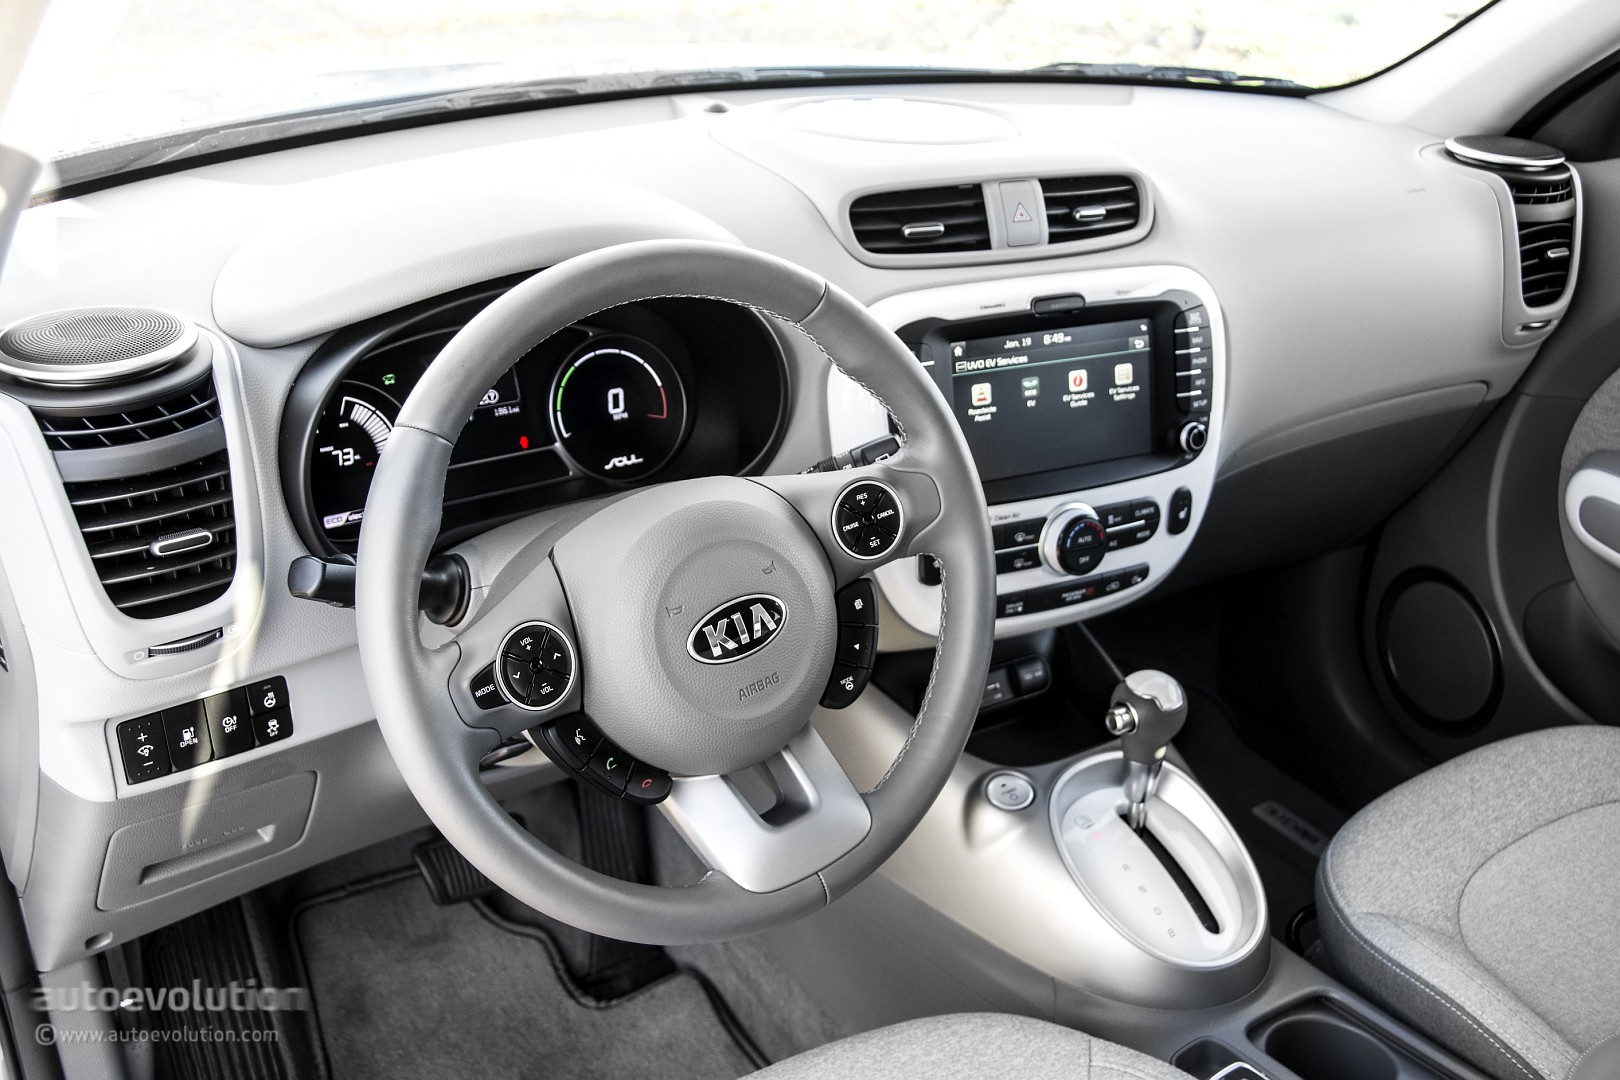 kia soul recall announced by kia motors america 208 858 units potentially affected autoevolution. Black Bedroom Furniture Sets. Home Design Ideas